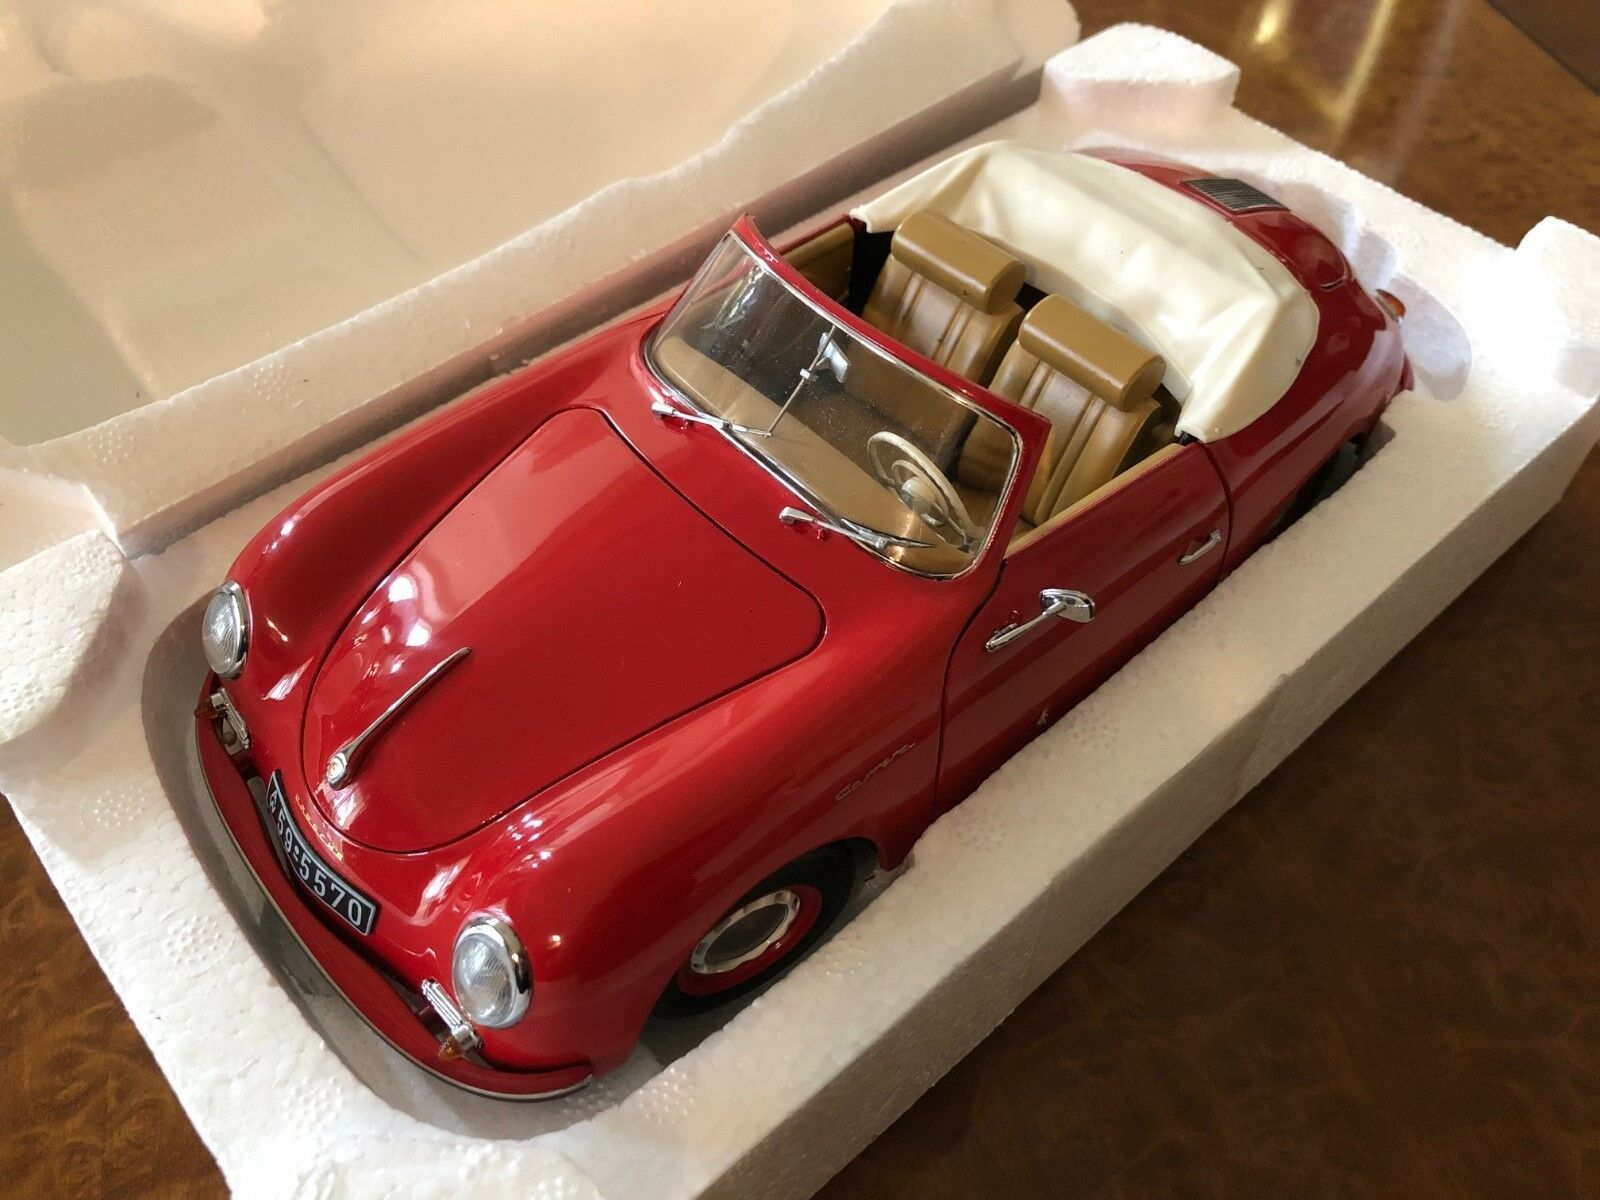 Schuco   1:18   1955 Porsche 356 A Cabriolet   Finished in rosso     SHU00310